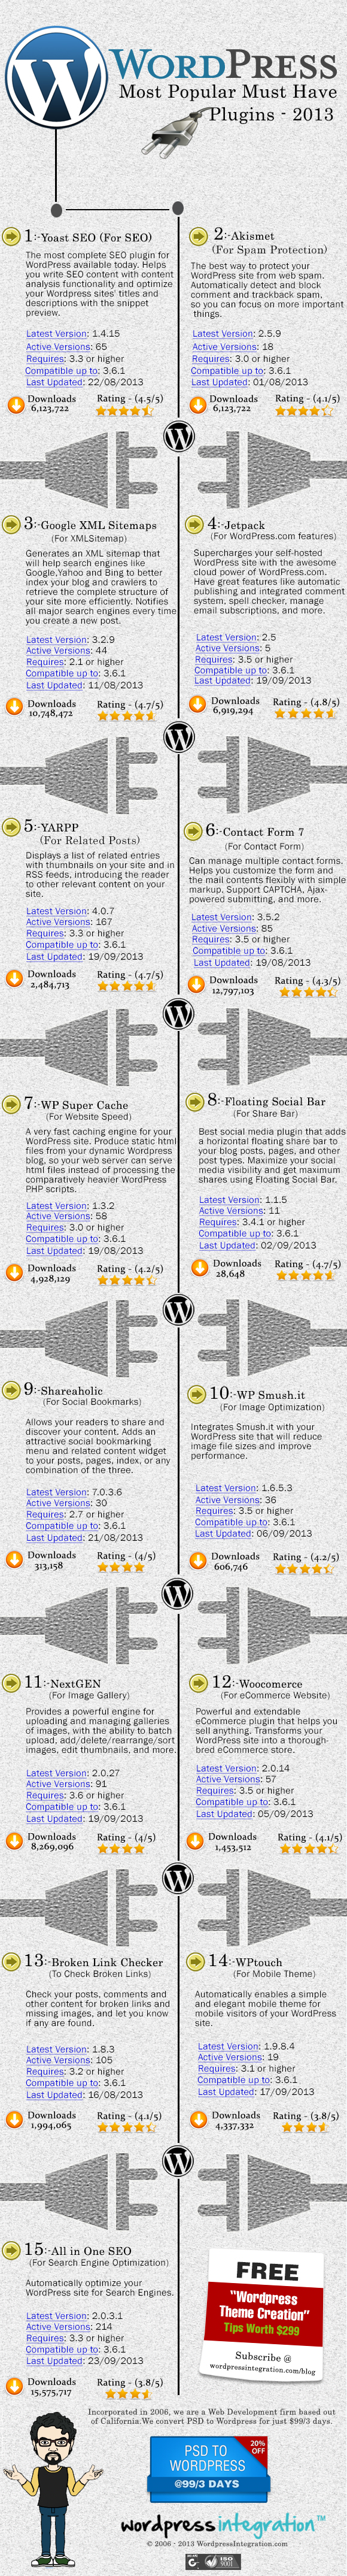 infographic-wordpress-plugins